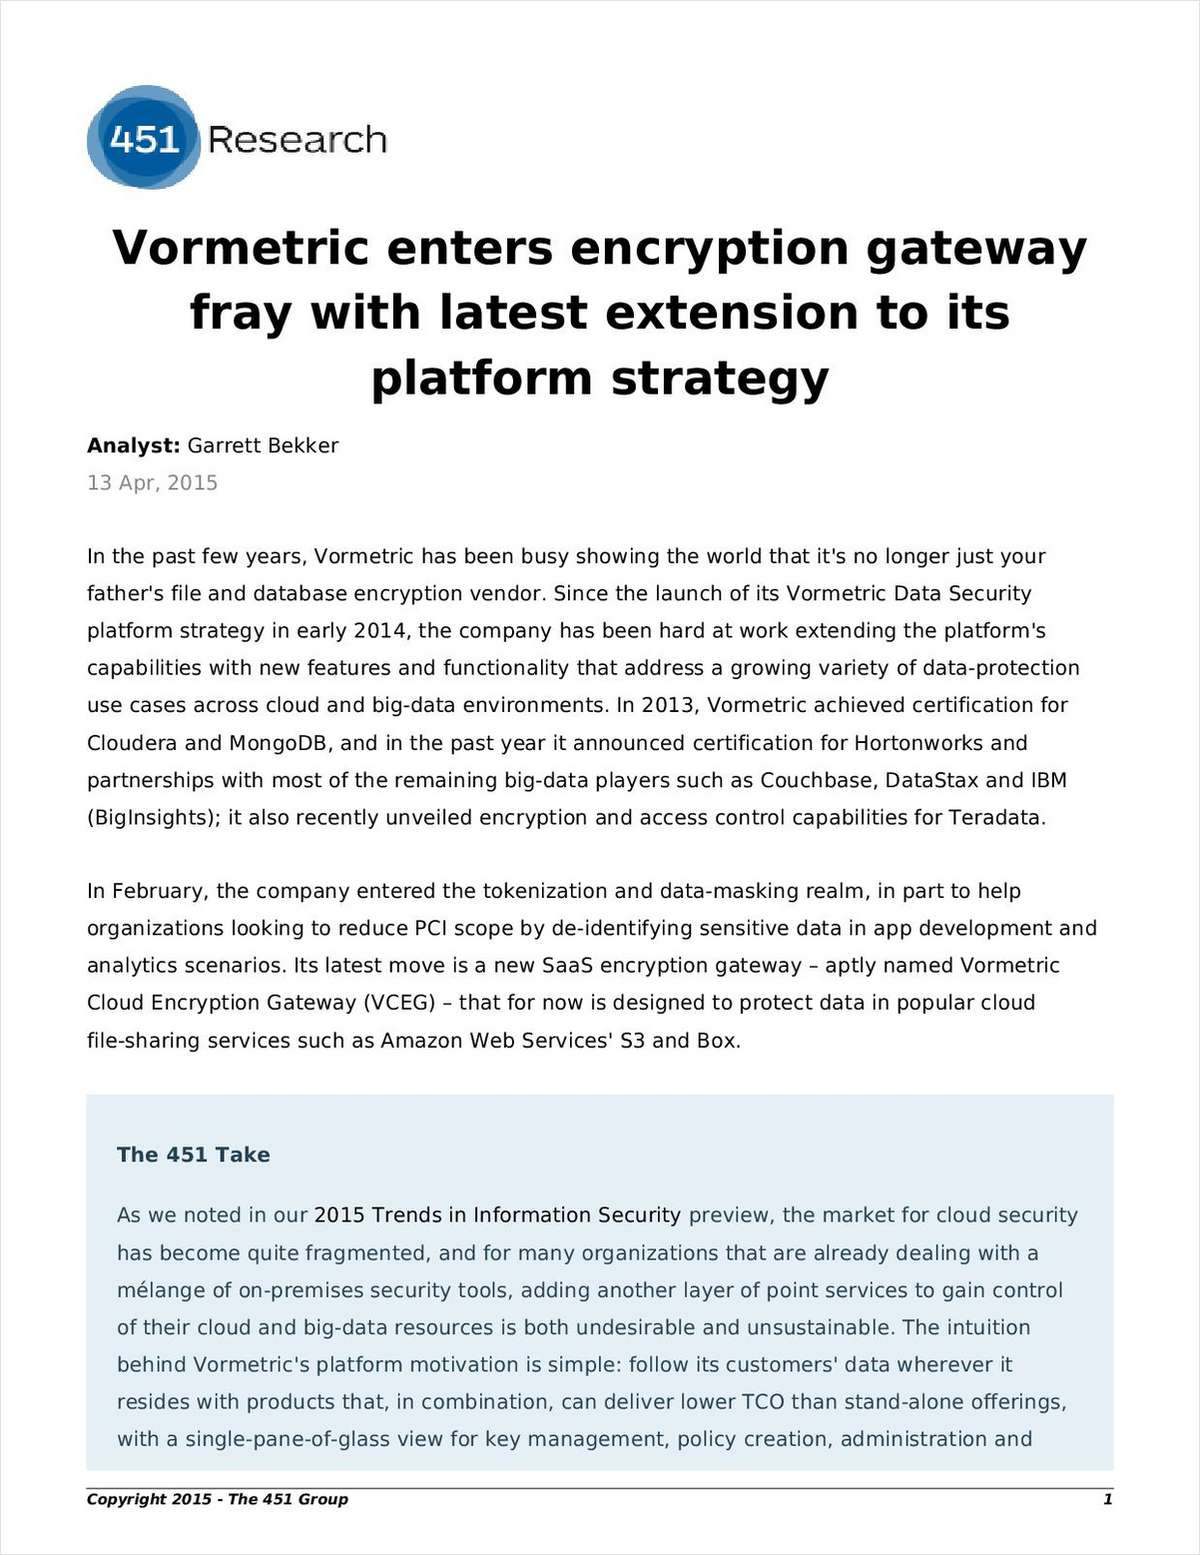 Vormetric Encryption Gateway and Platform Strategy